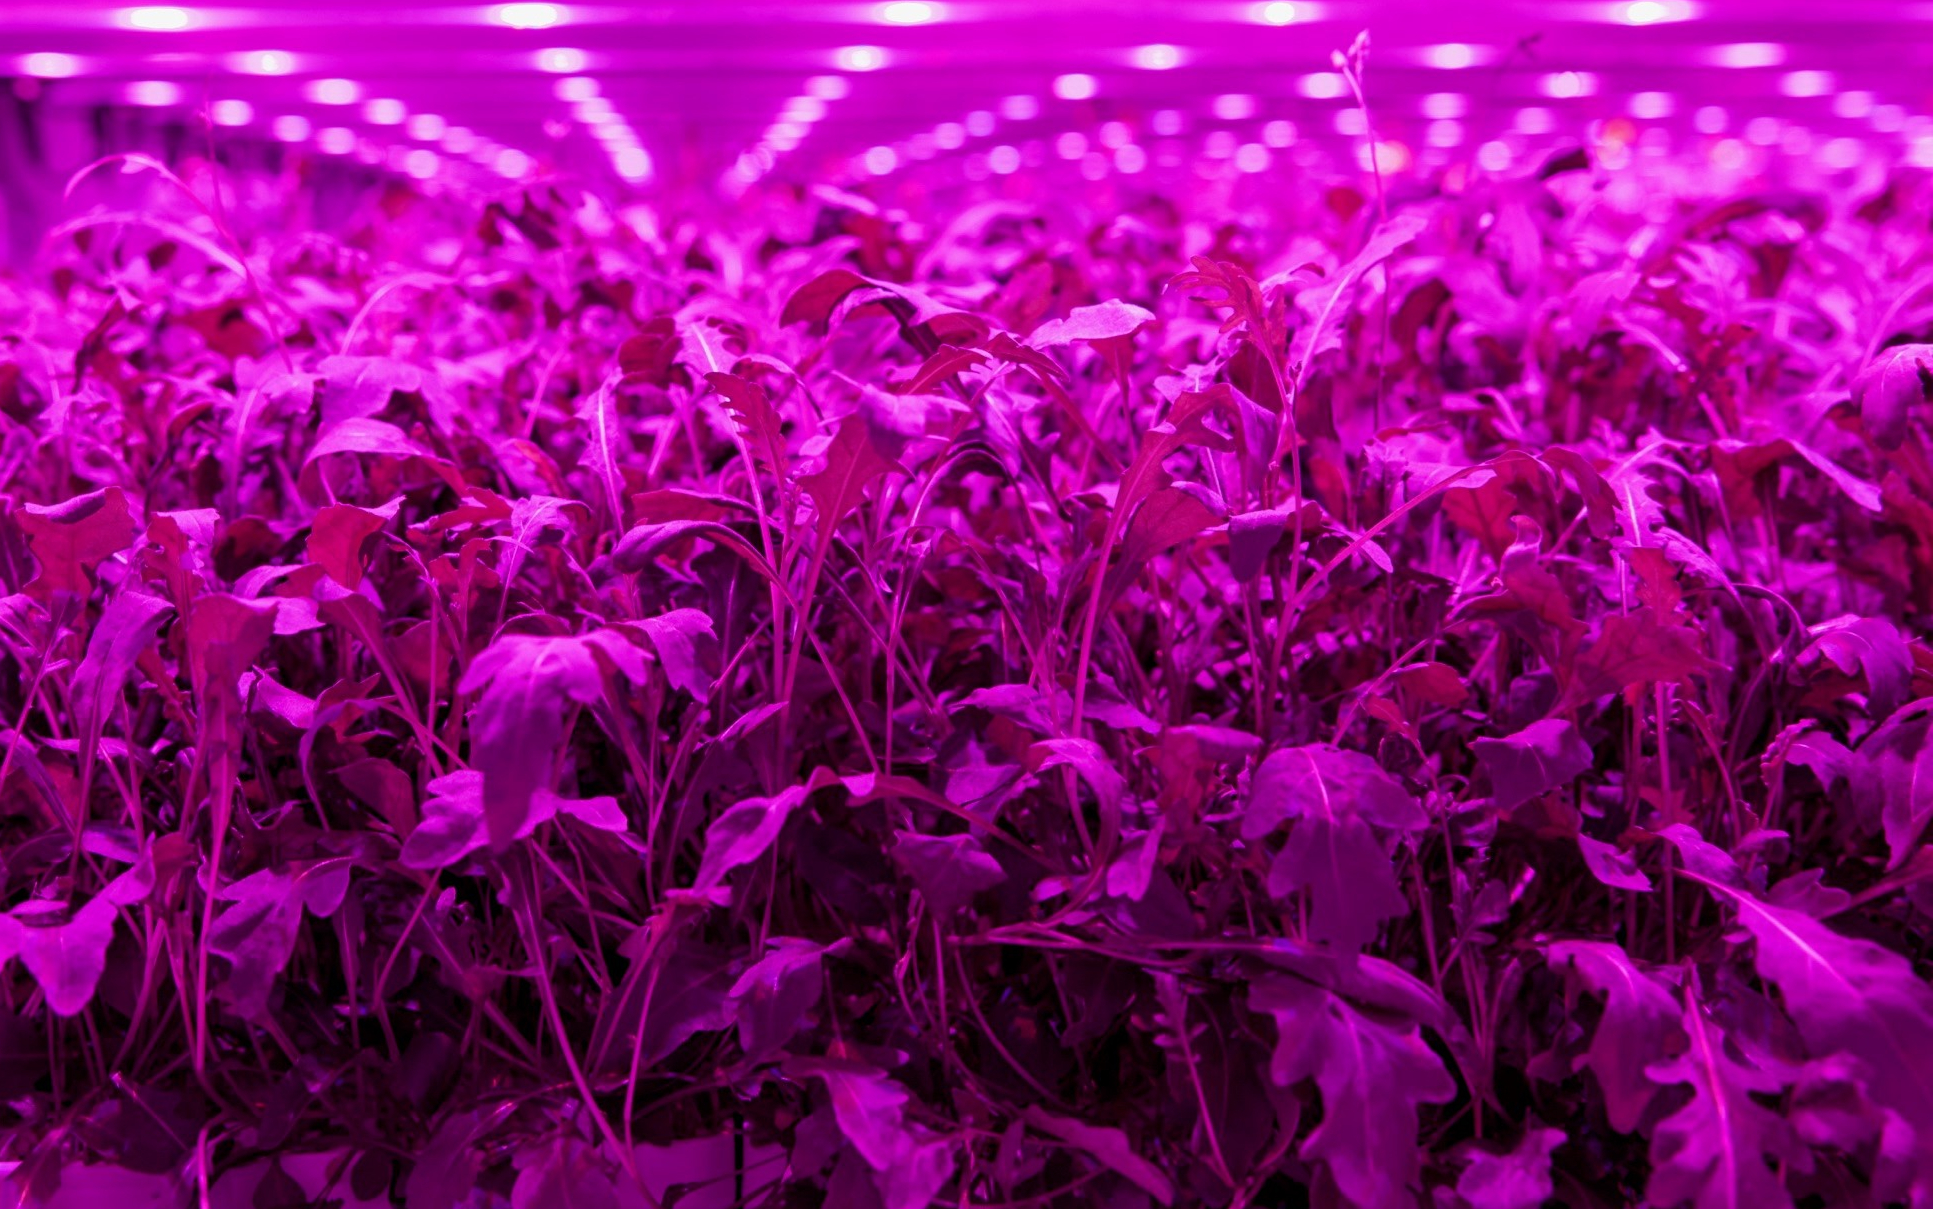 Derby AgriTech start-up wins Innovate UK funding to develop ground-breaking sensor technology for vertical farming